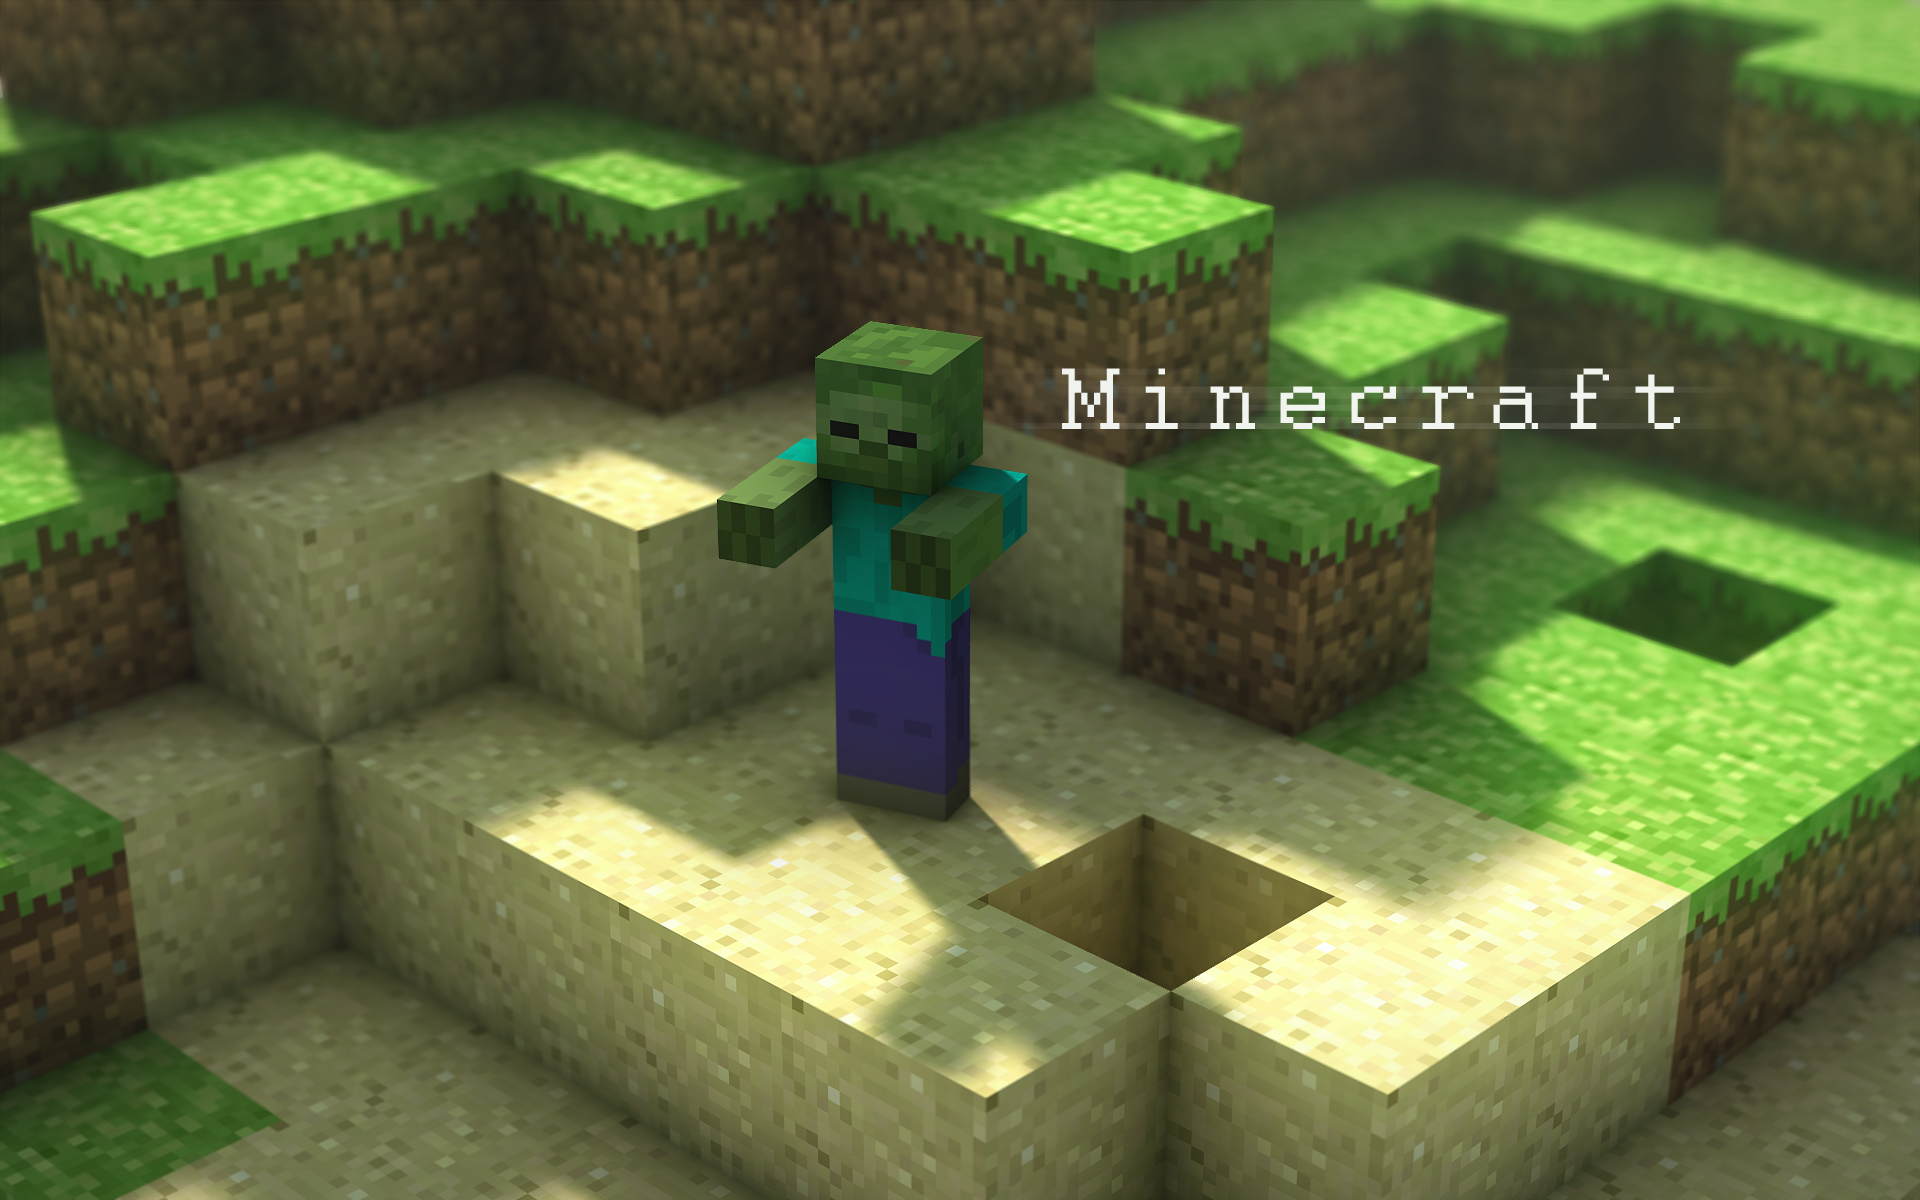 minecraft wallpaper,green,biome,pc game,video game software,grass